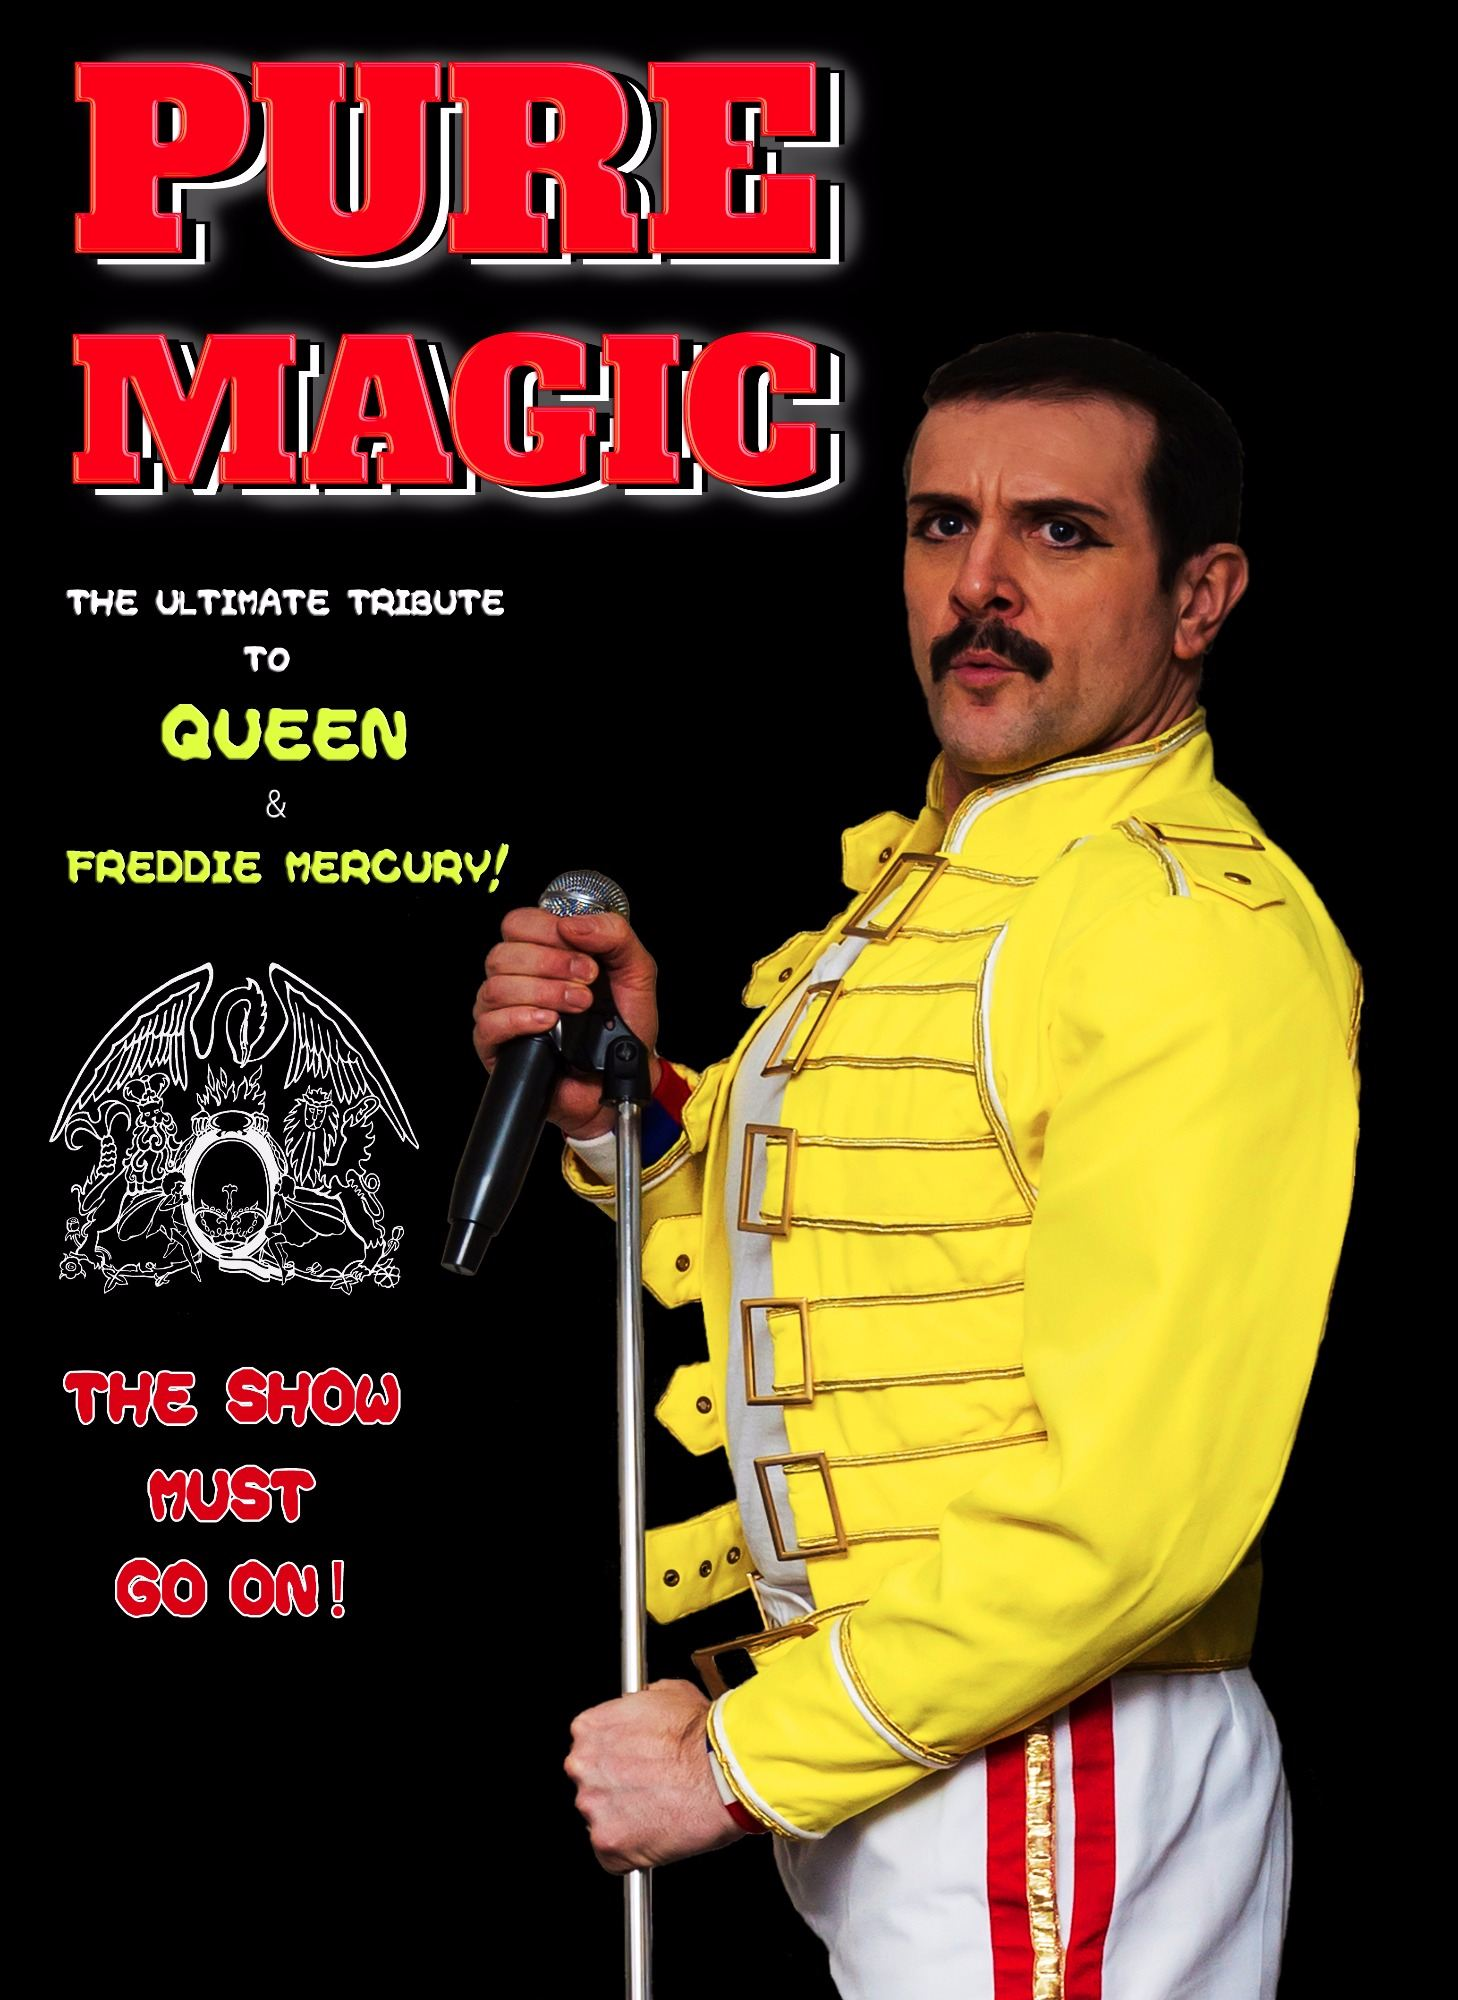 Freddie Mercury & Queen Tribute Show